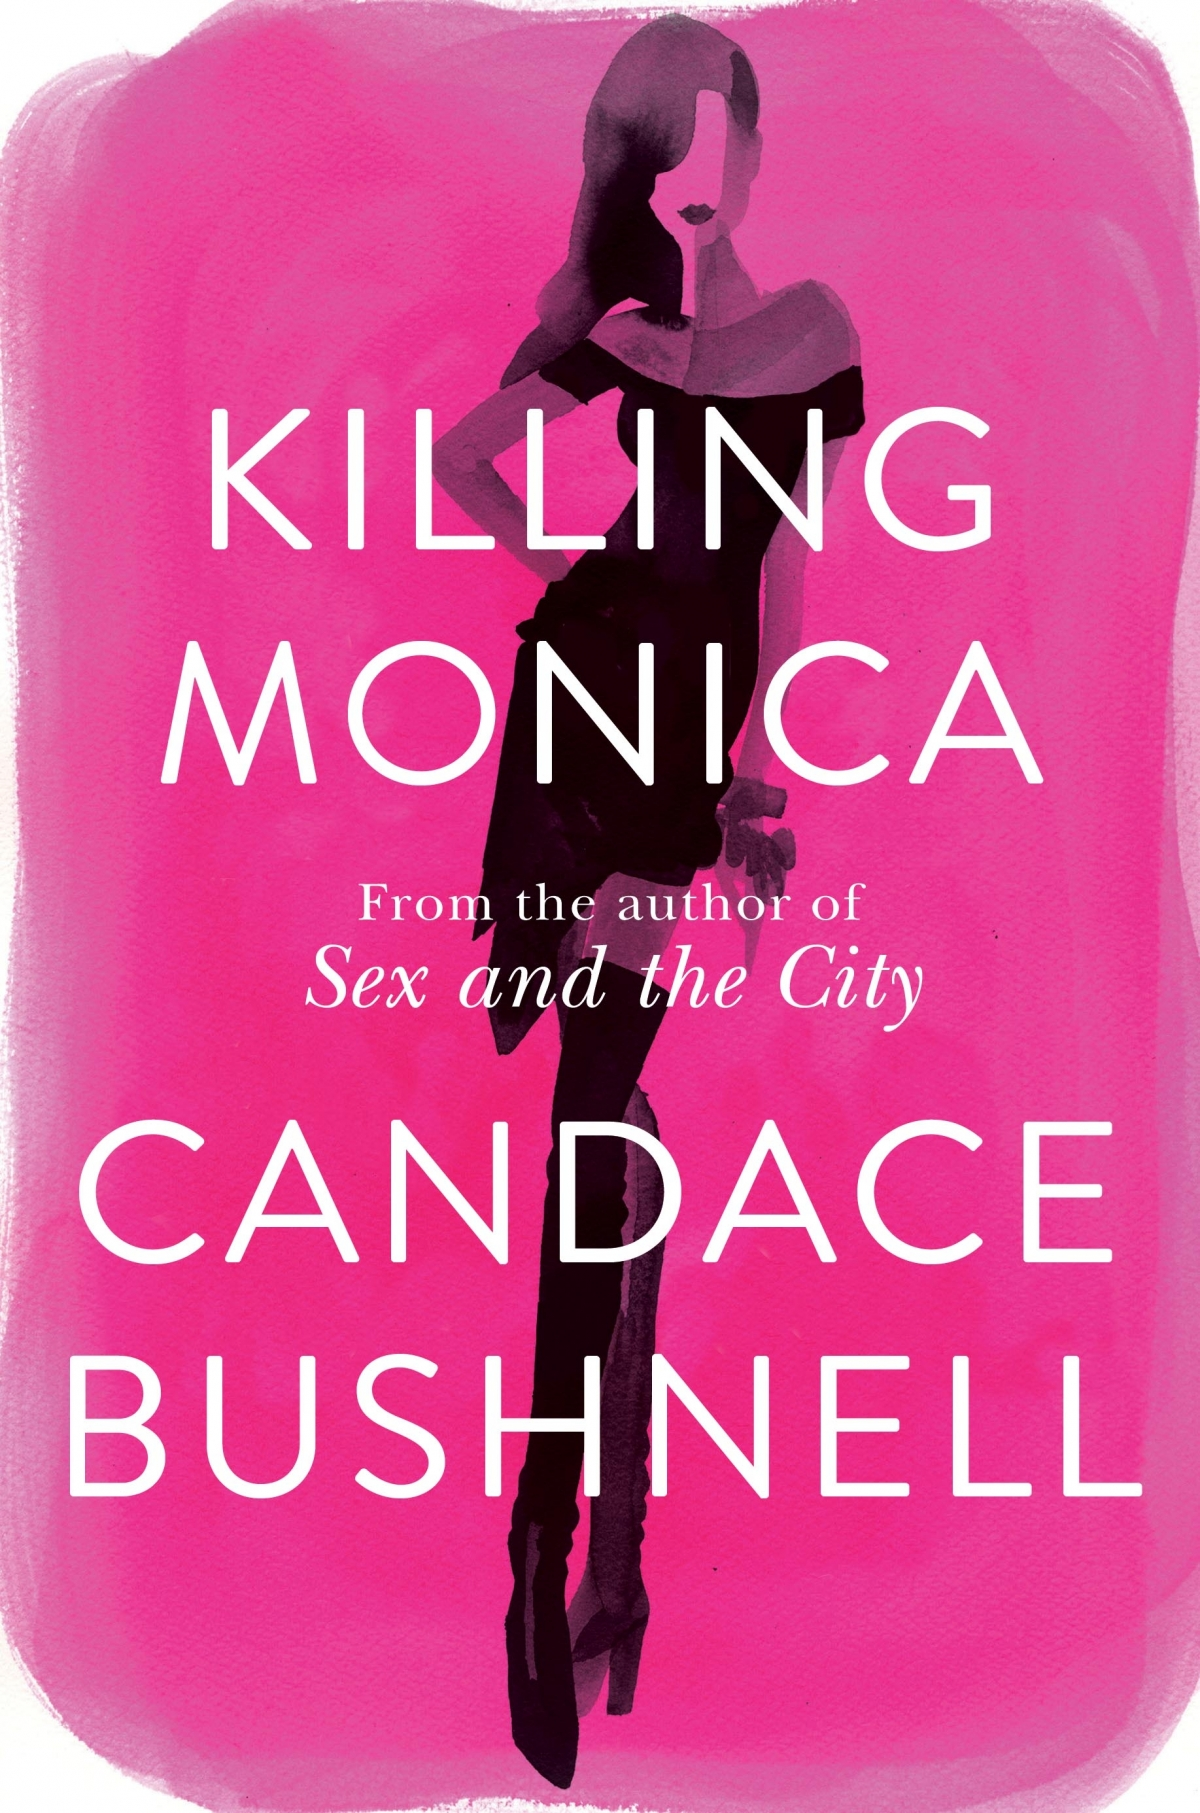 Candace Bushnell book